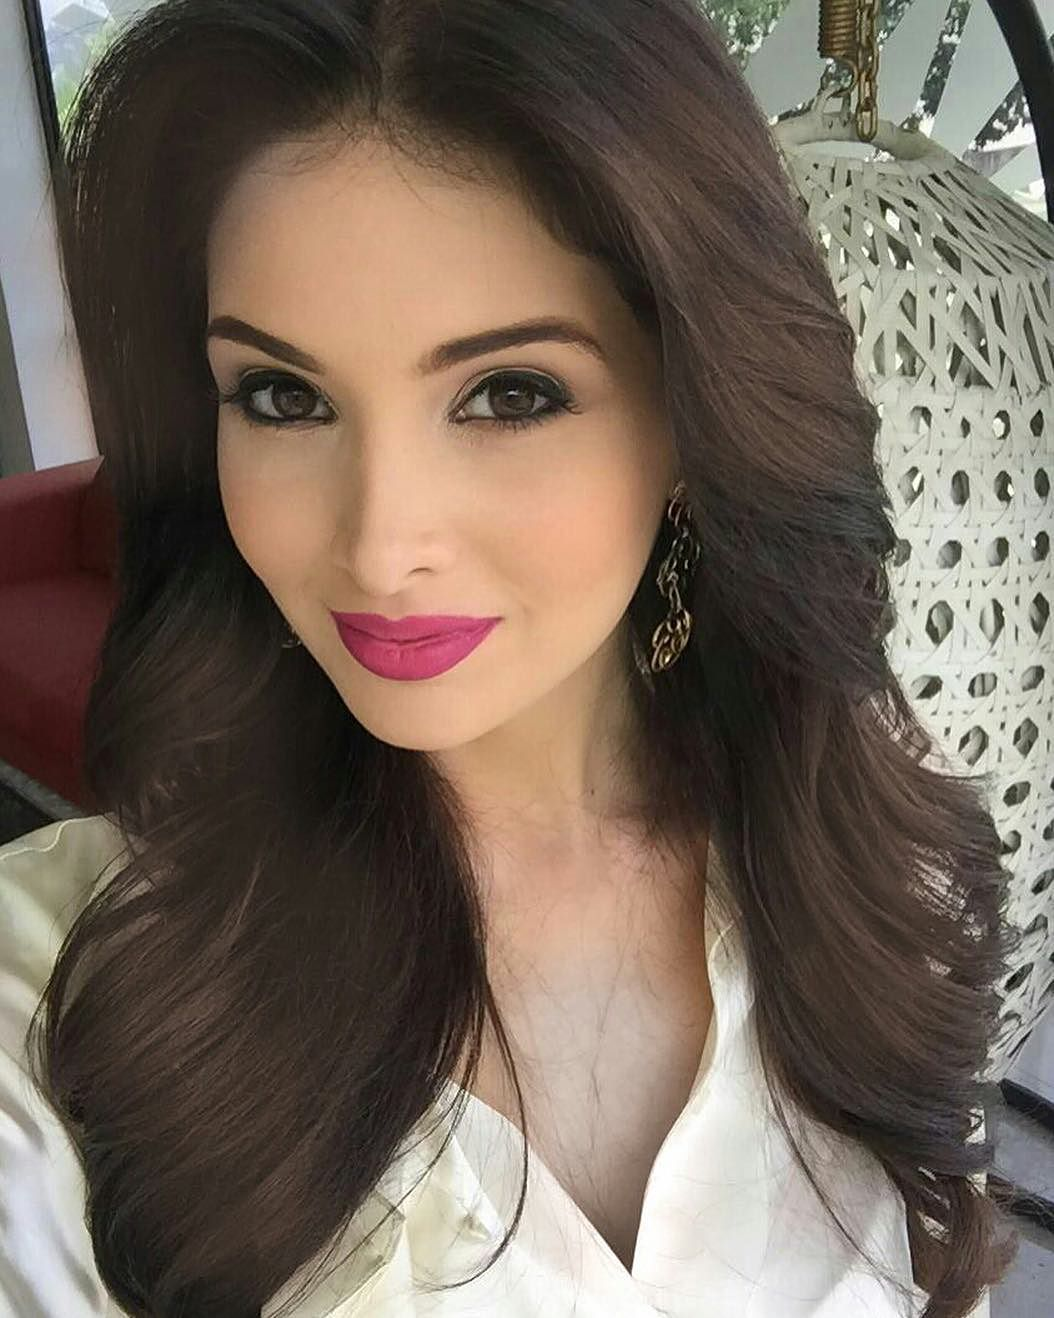 diana croce, 2nd runner-up de miss international 2017/miss world venezuela 2016. Znwkc5bq